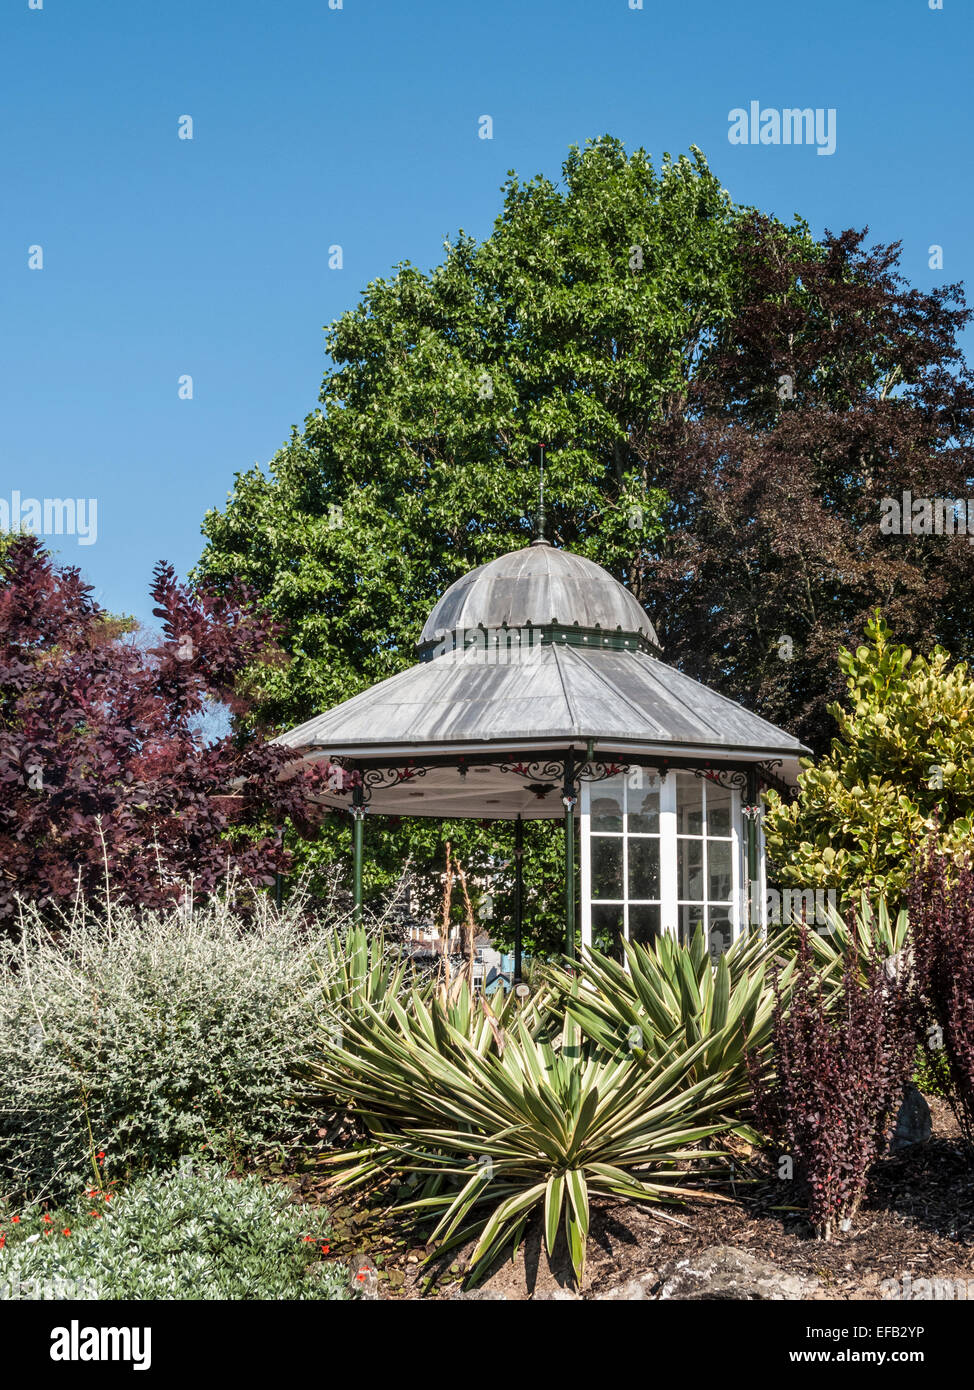 The town bandstand amongst exotic plants in Britannia Gardens, Dartmouth, South Devon - Stock Image